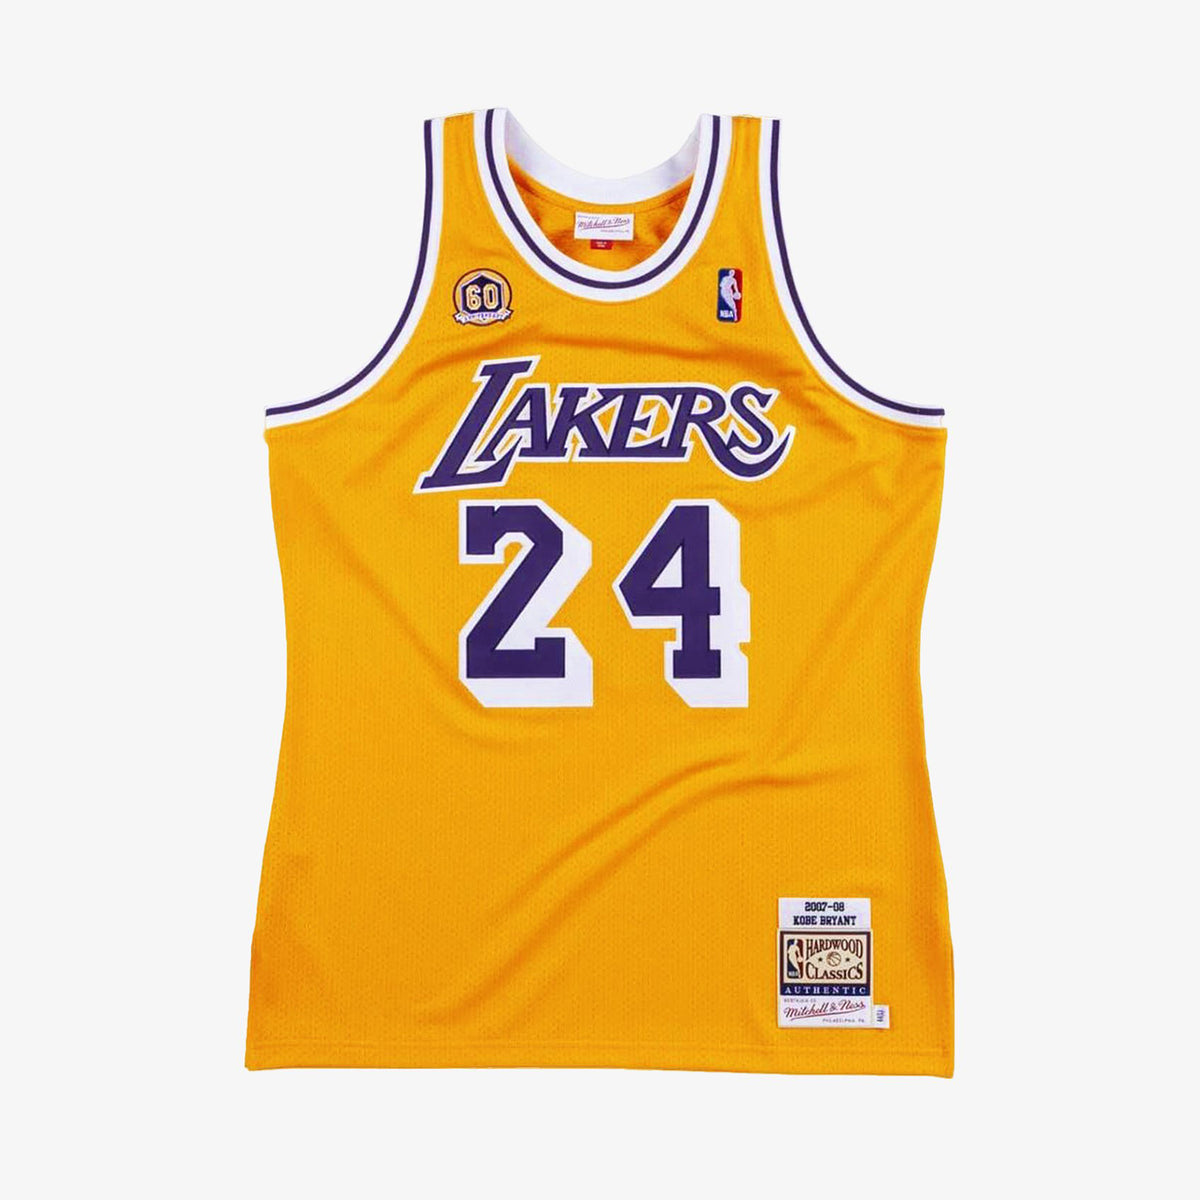 Kobe Bryant Los Angeles Lakers Anniversary Home 2007-08 Authentic Hardwood Classic Jersey - Yellow